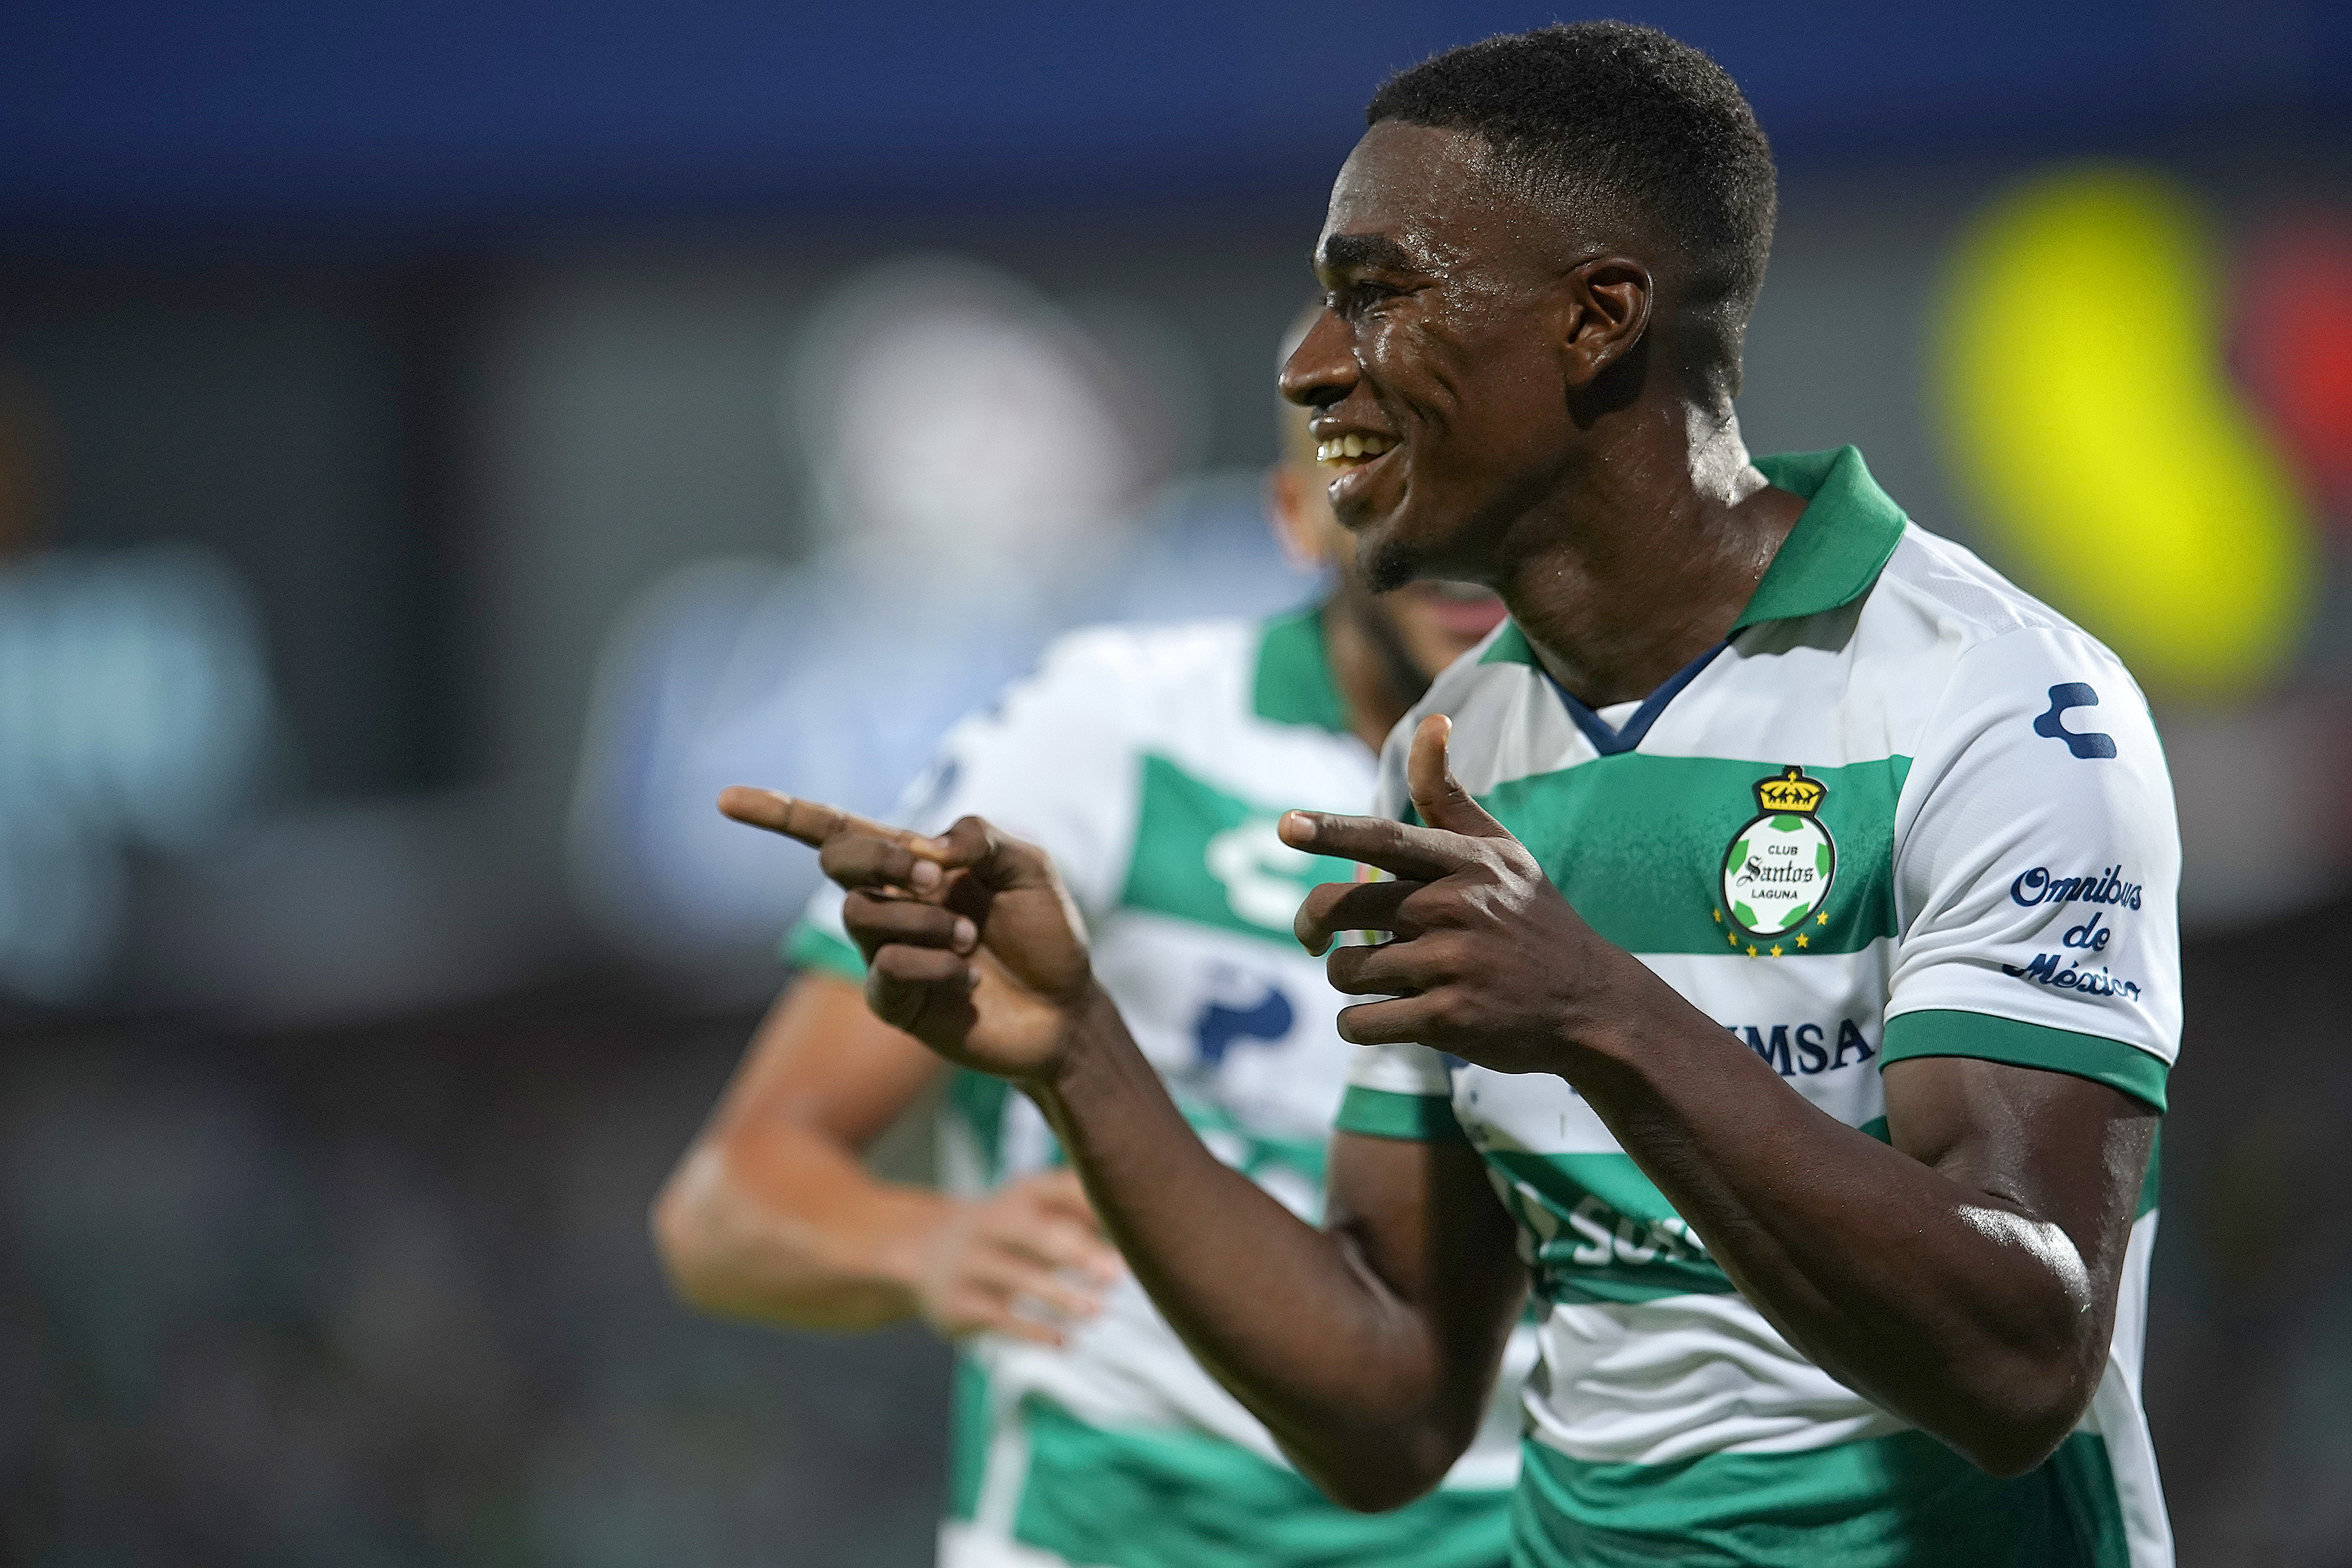 Felix Torres of Santos celebrates after scoring the first goal of his team during the 5th round match between Santos Laguna and Atlas as part of the Torneo Grita Mexico A21 at Corona Stadium on August 18, 2021 in Torreon, Mexico.